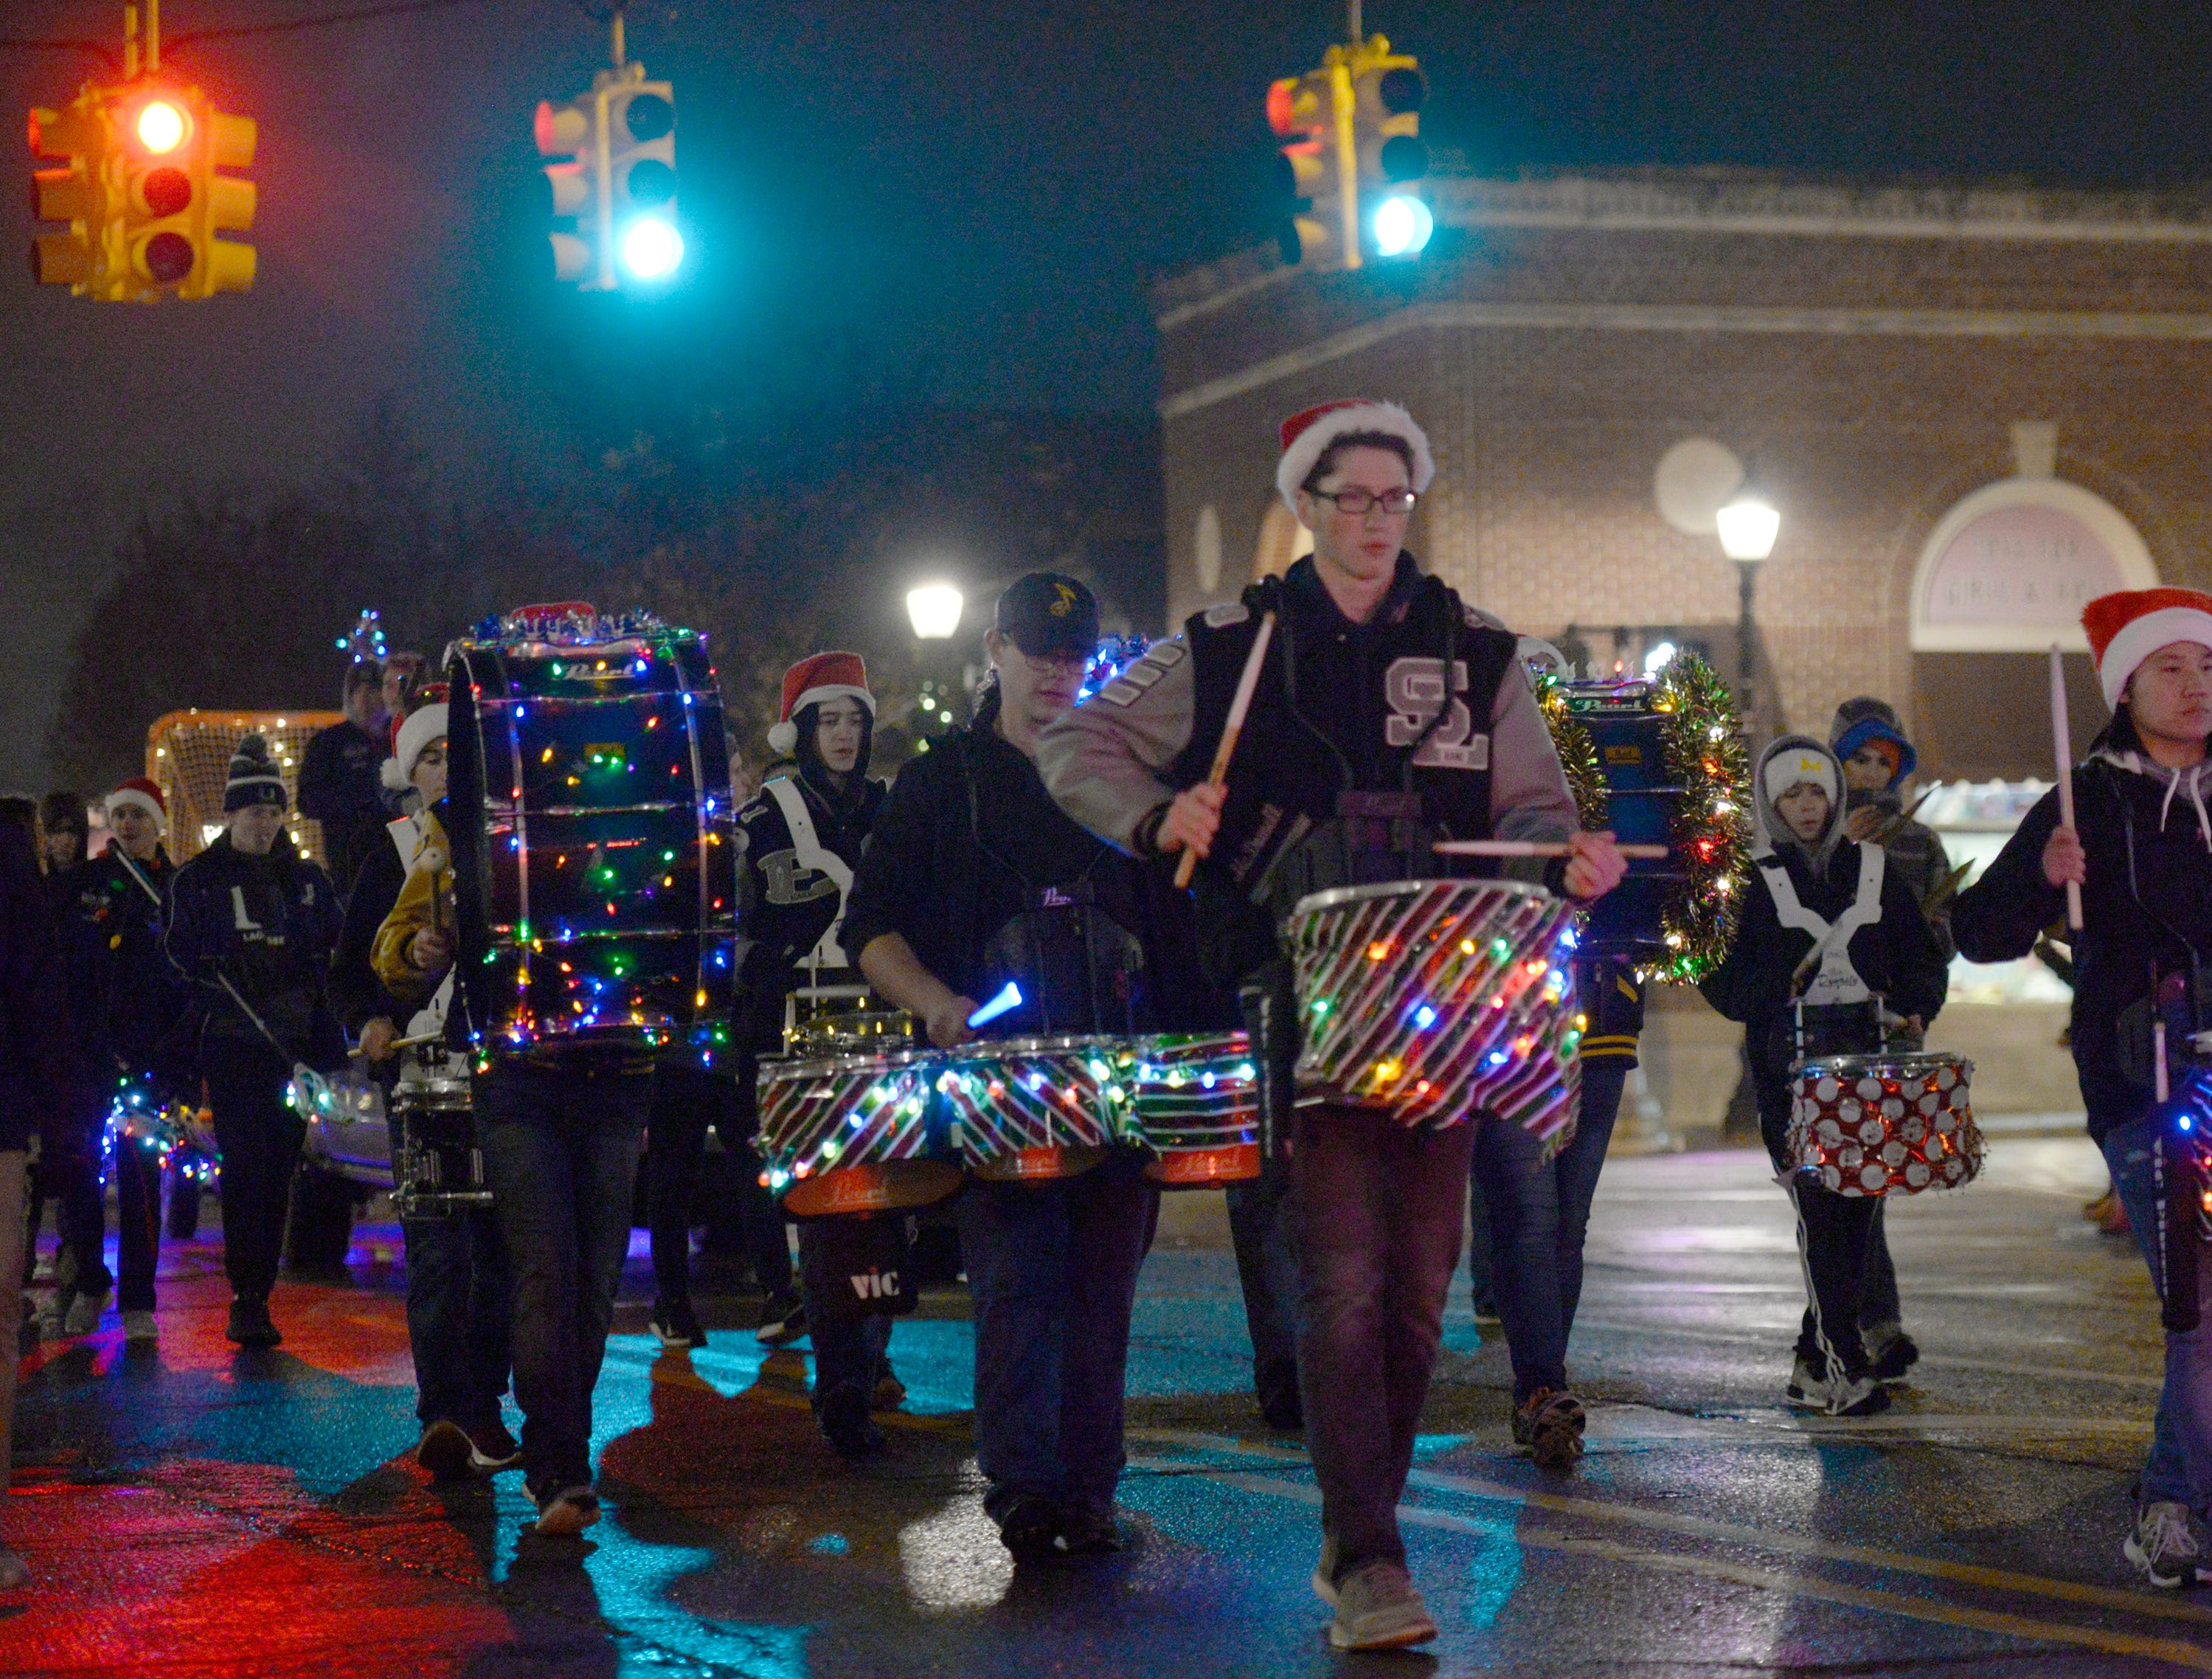 The South Lyon High School Marching Band in the Lighted Parade Dec. 1, 2018.